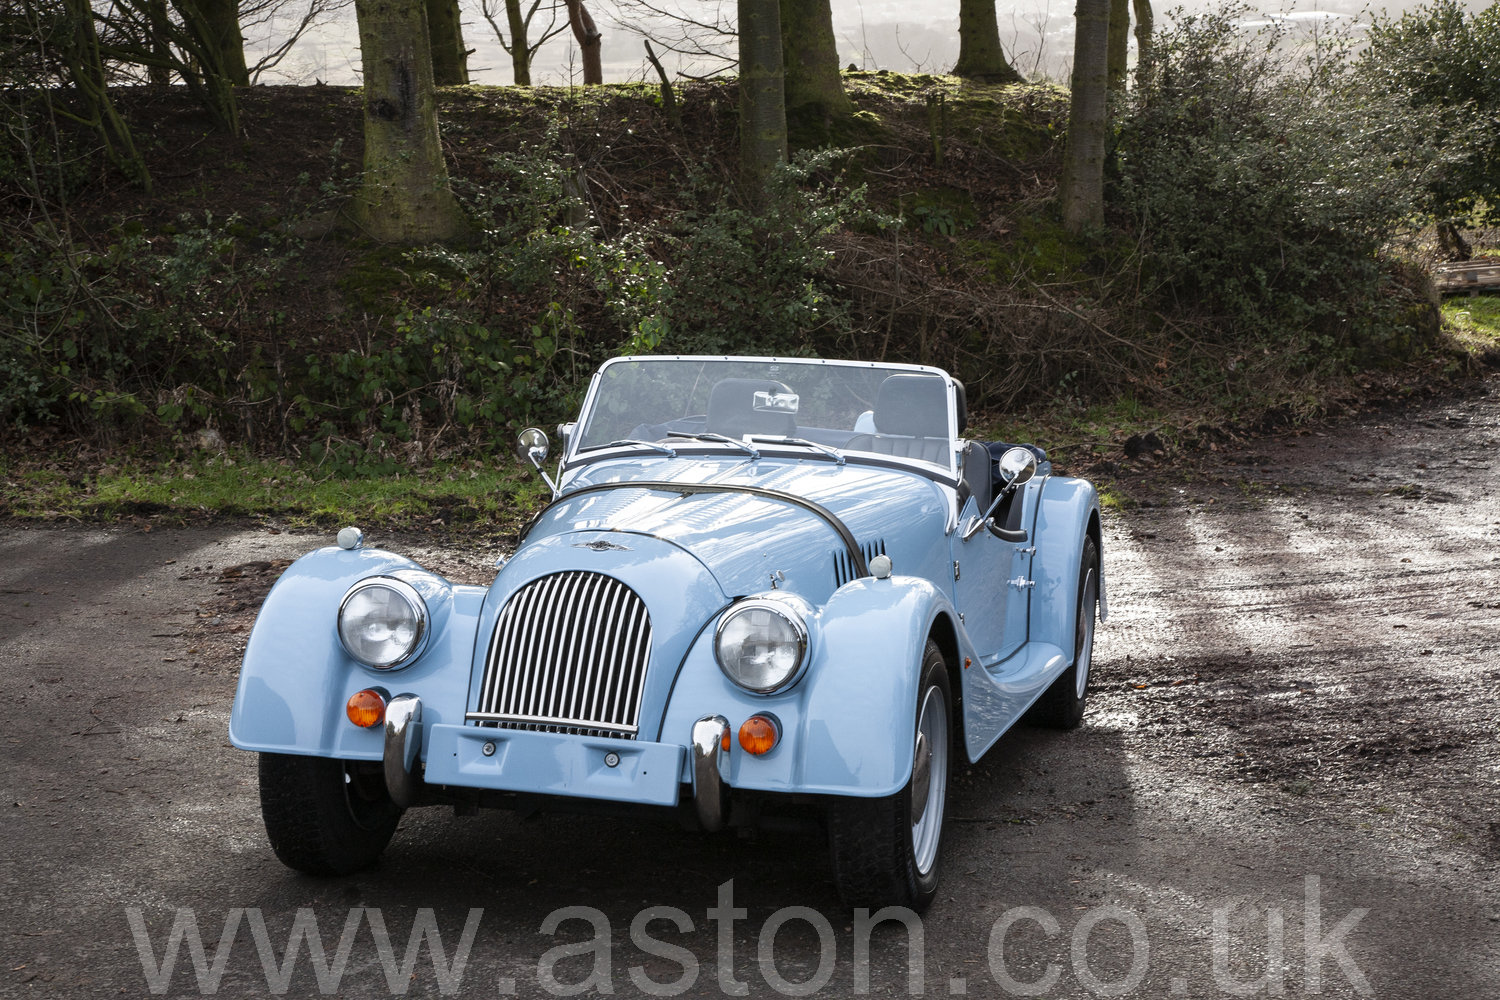 2006 Morgan 4/4 70th Anniversary Model For Sale (picture 2 of 6)